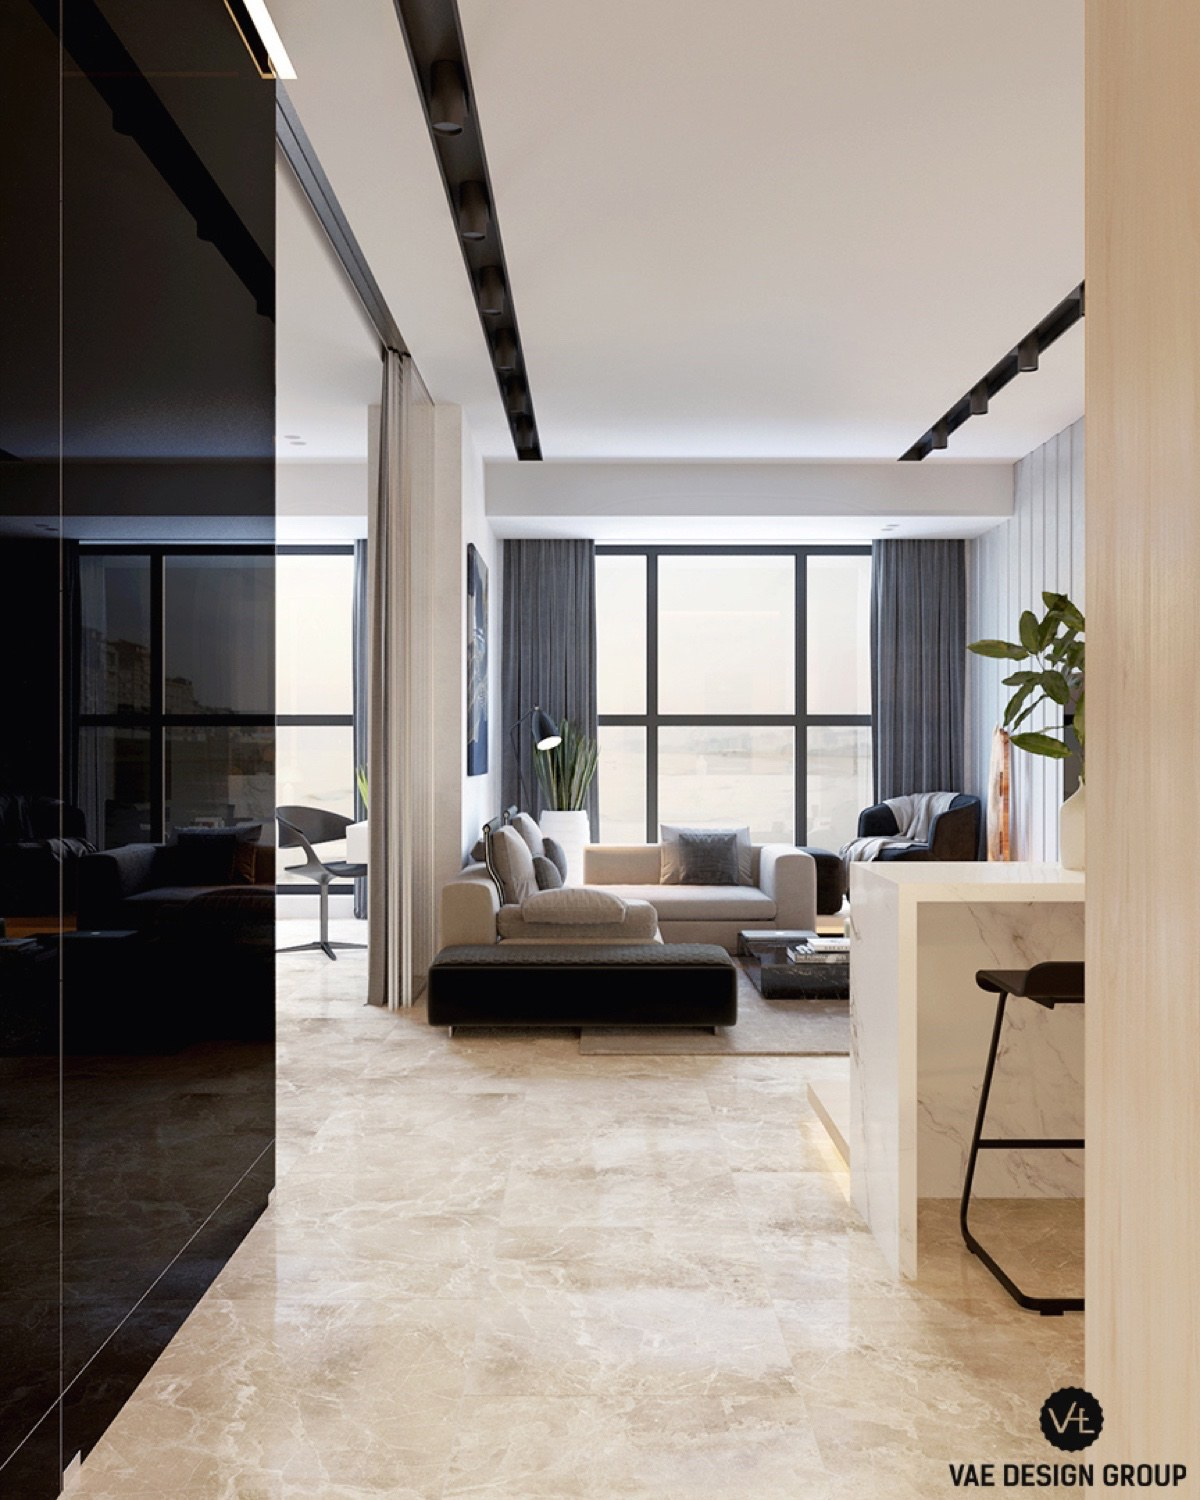 Large Studio Apartments: 3 Small Studio Apartments That Exude Luxurious Space